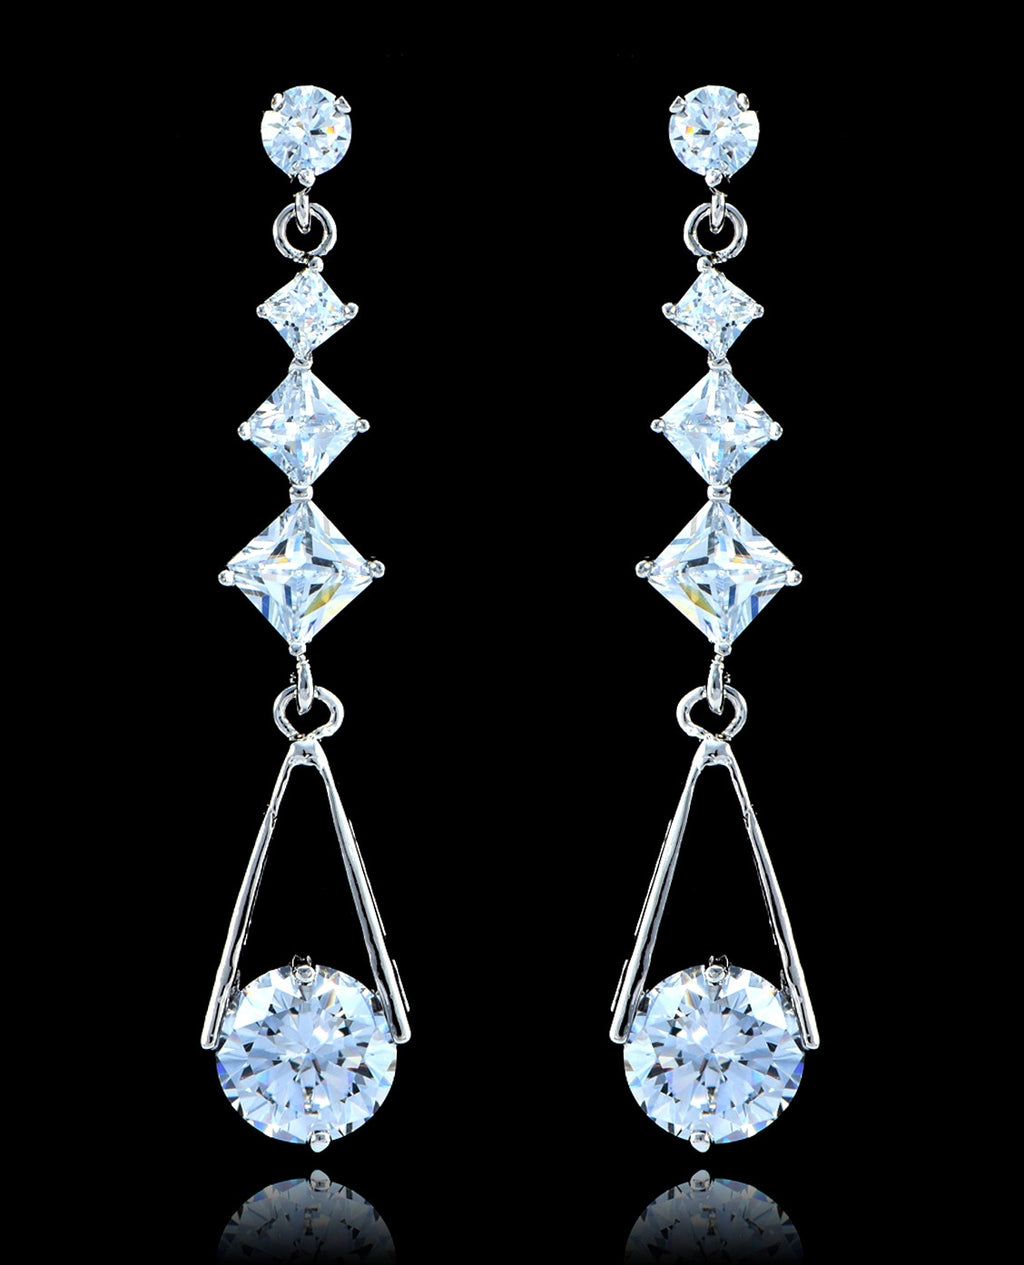 Crystal Silver Cubic Zirconia Drop and Dangle Earrings - Bedazzled By Jeanelle - 1